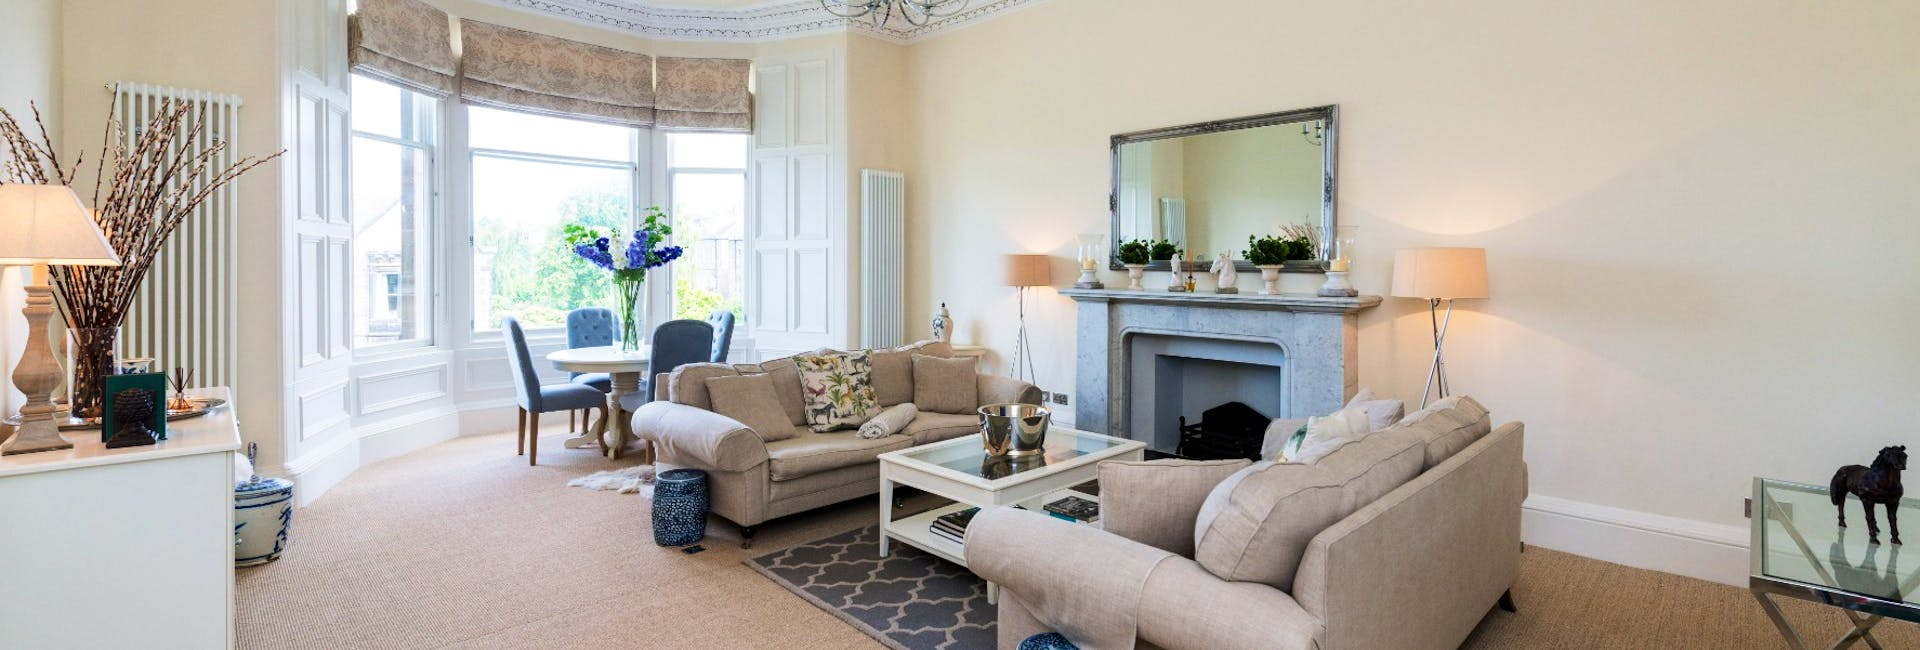 Featured Image for Inverleith Place P365 Inverleith Edinburgh